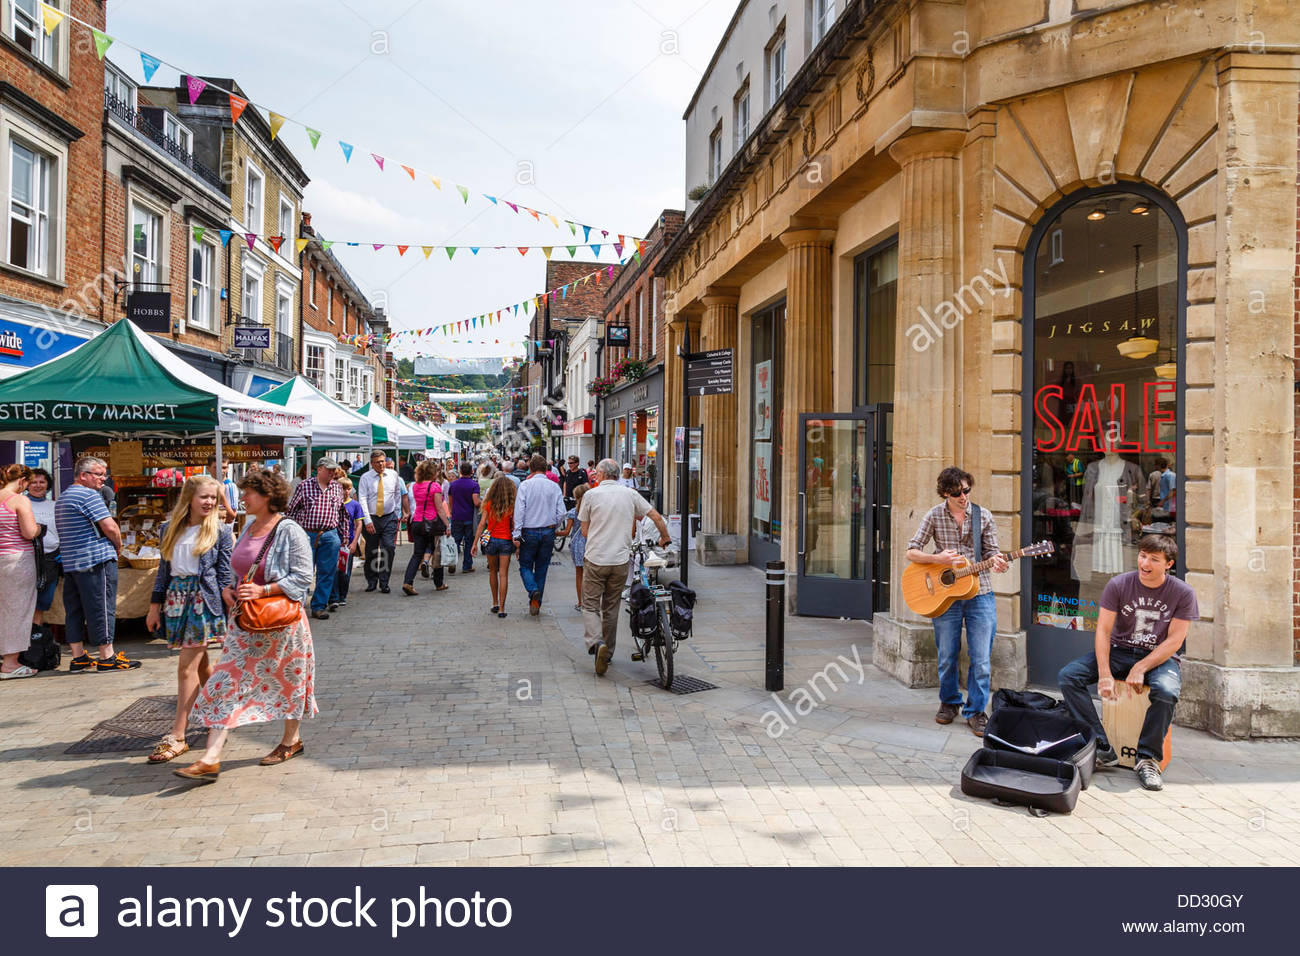 Pedestrianised high street in Winchester, Hampshire, UK Stock Photo